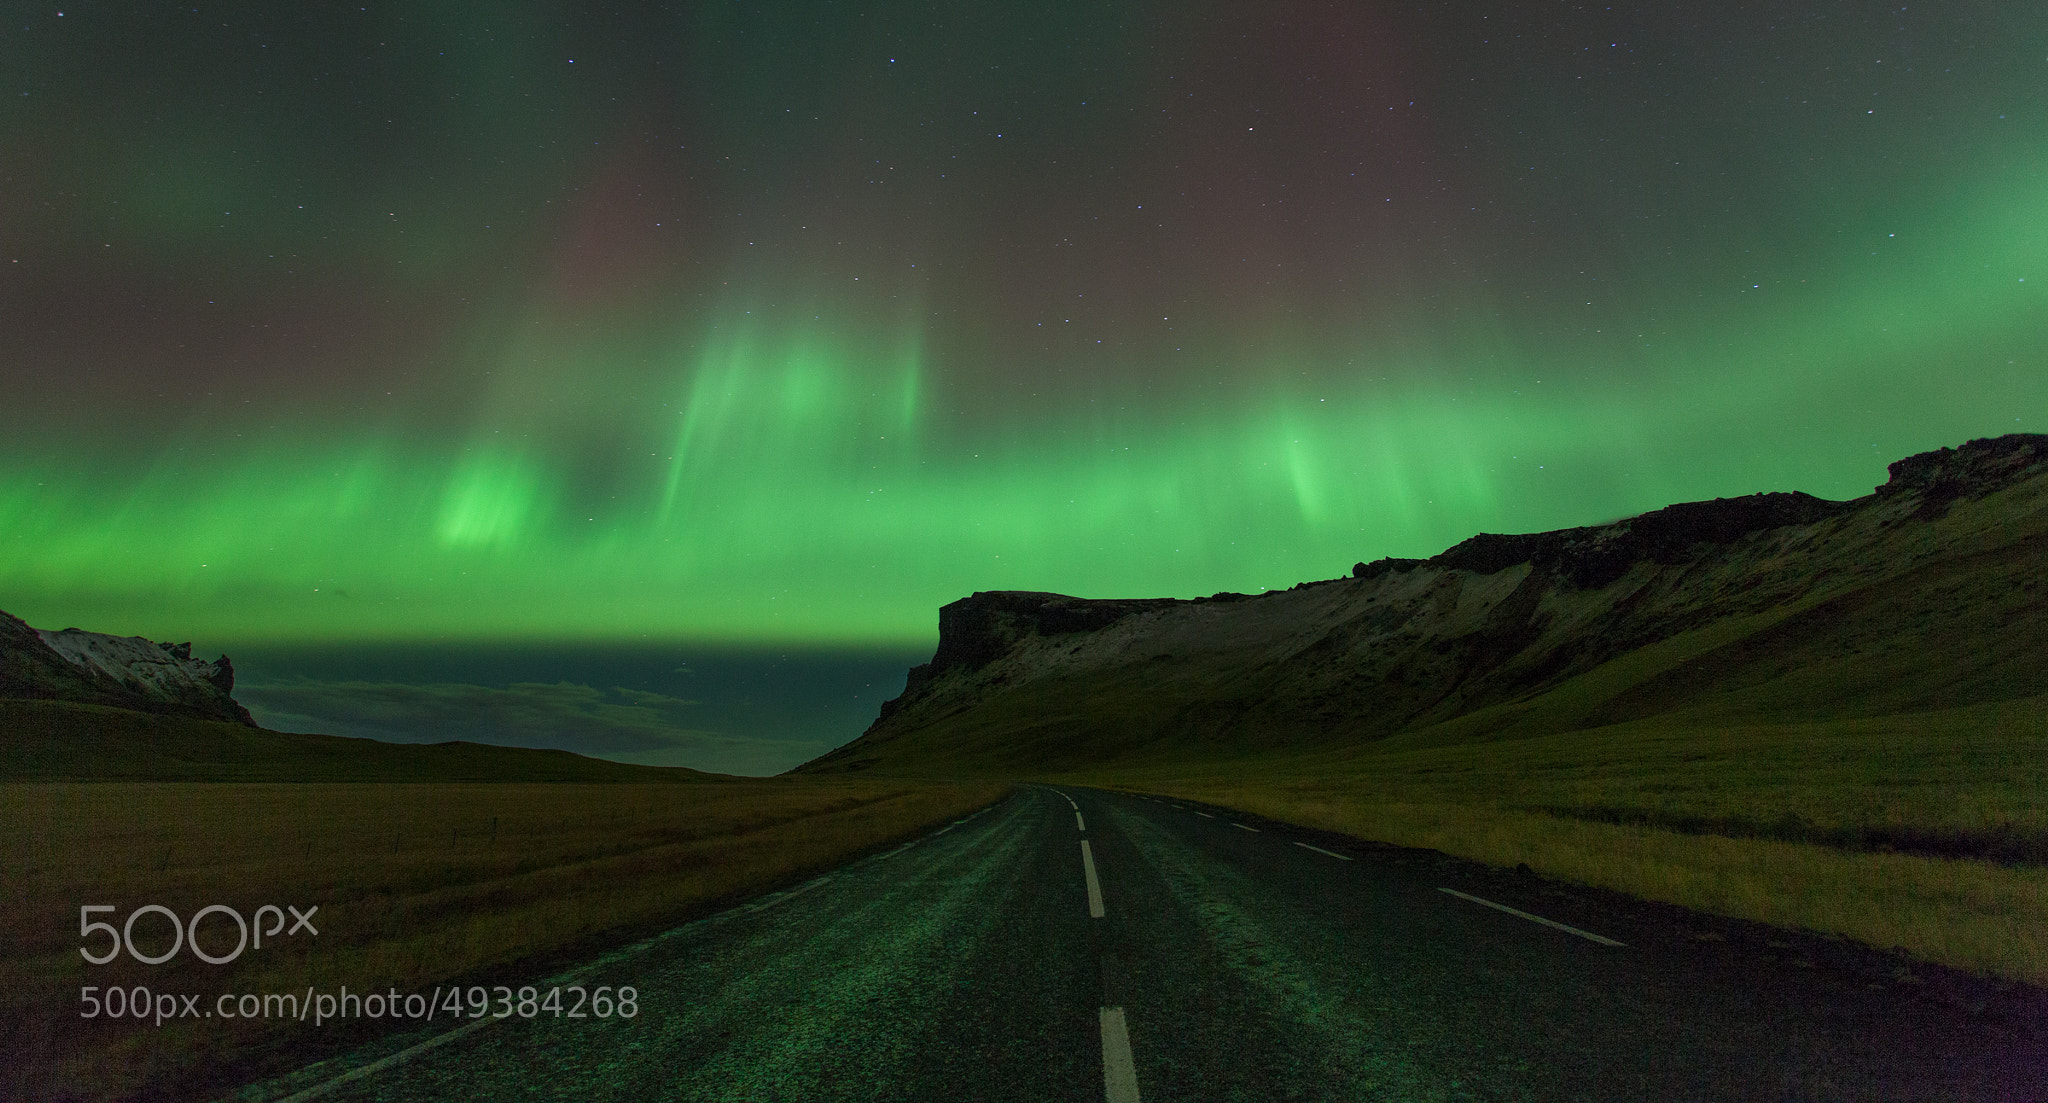 Photograph Aurora Borealis, Iceland by Guy Brown on 500px